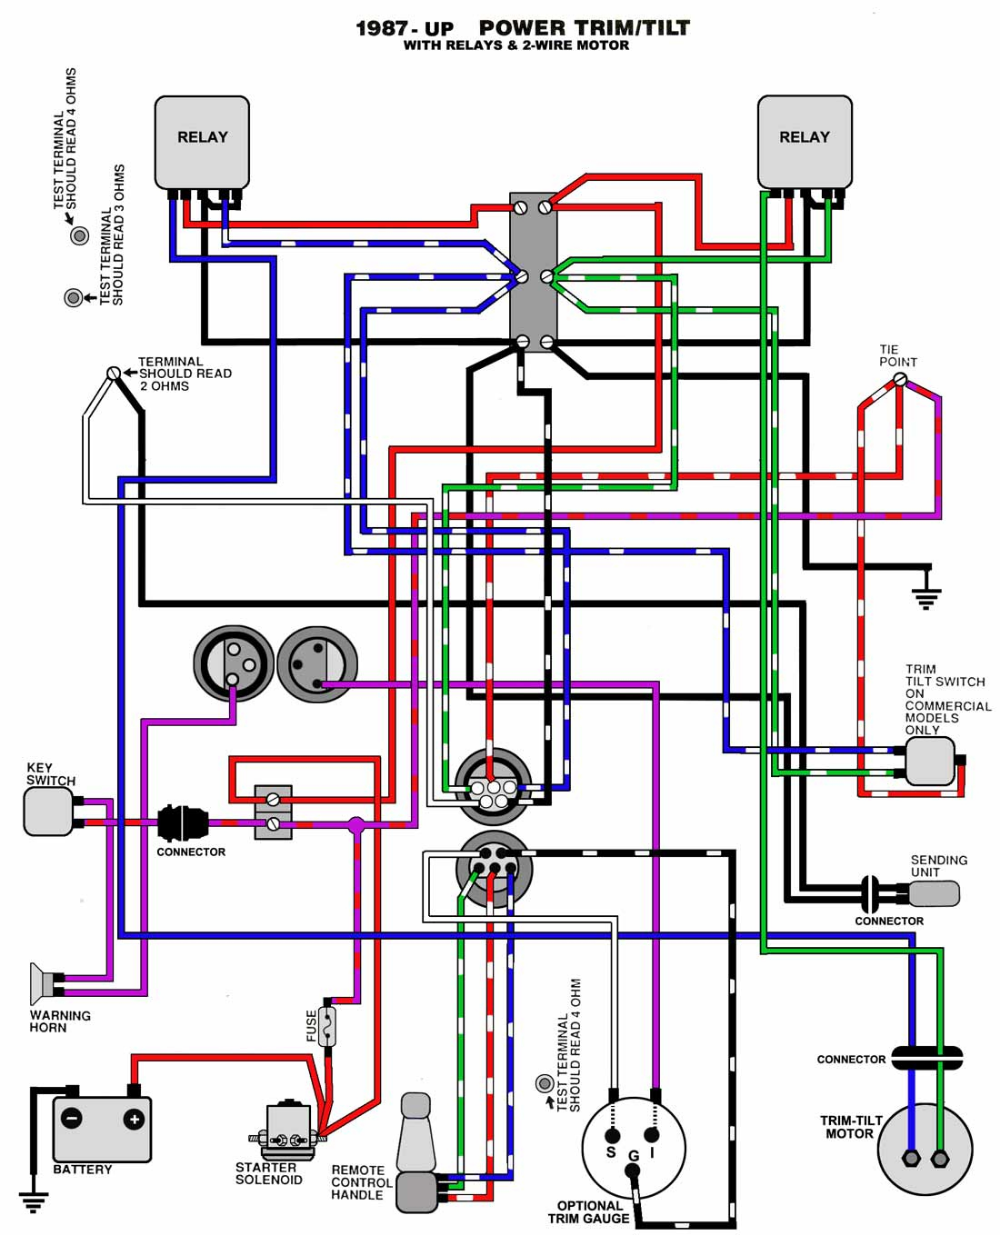 [DIAGRAM_38YU]  evinrude trim gauge wiring diagram - Google Search | Mercury outboard,  Diagram, Outboard | Power Gauge Wiring Diagram |  | Pinterest